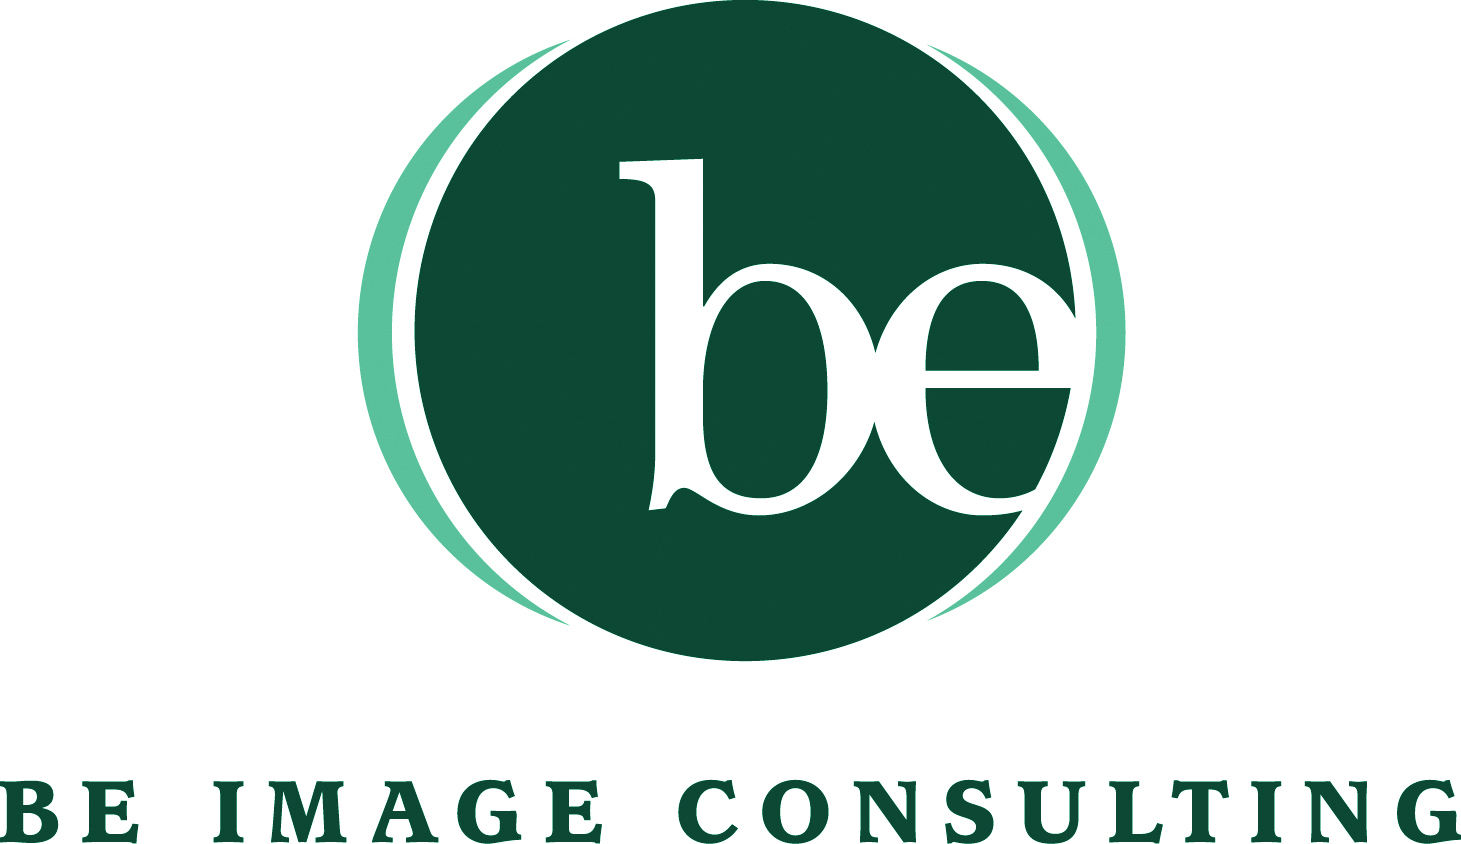 Be Image Consulting